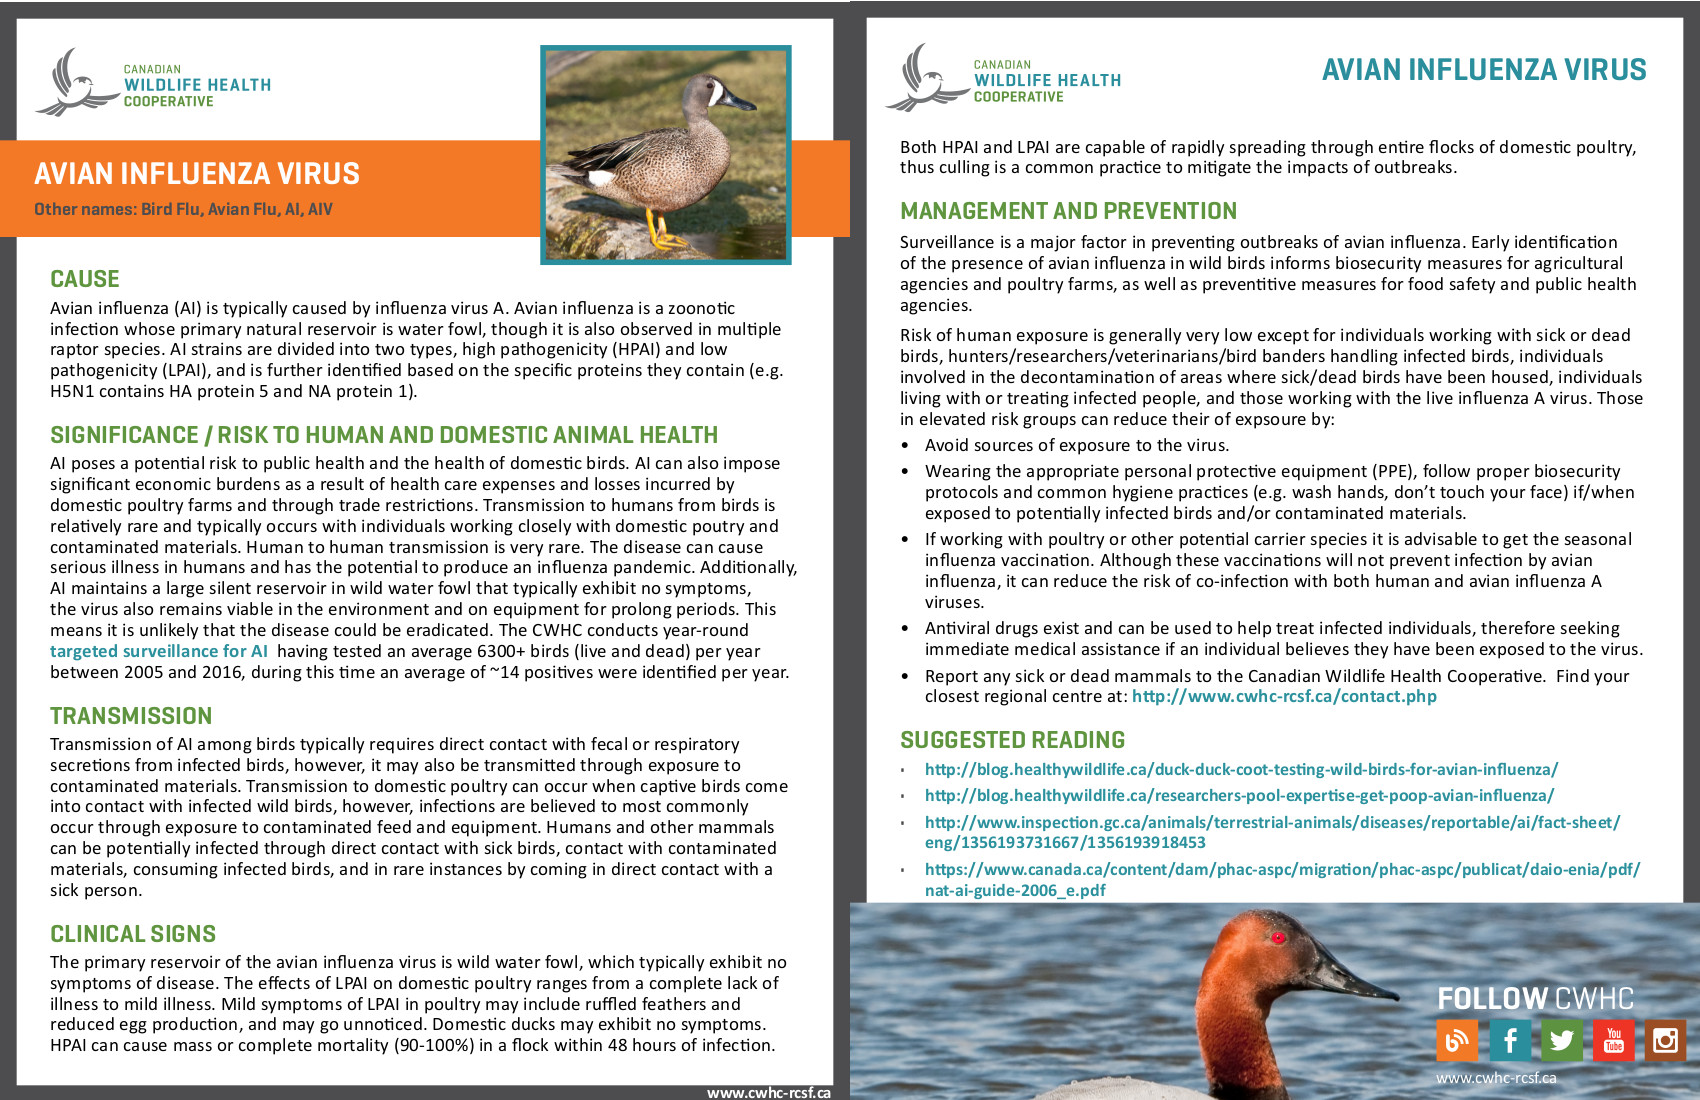 CWHC-RCSF - Canadian Wildlife Health Cooperative / Réseau